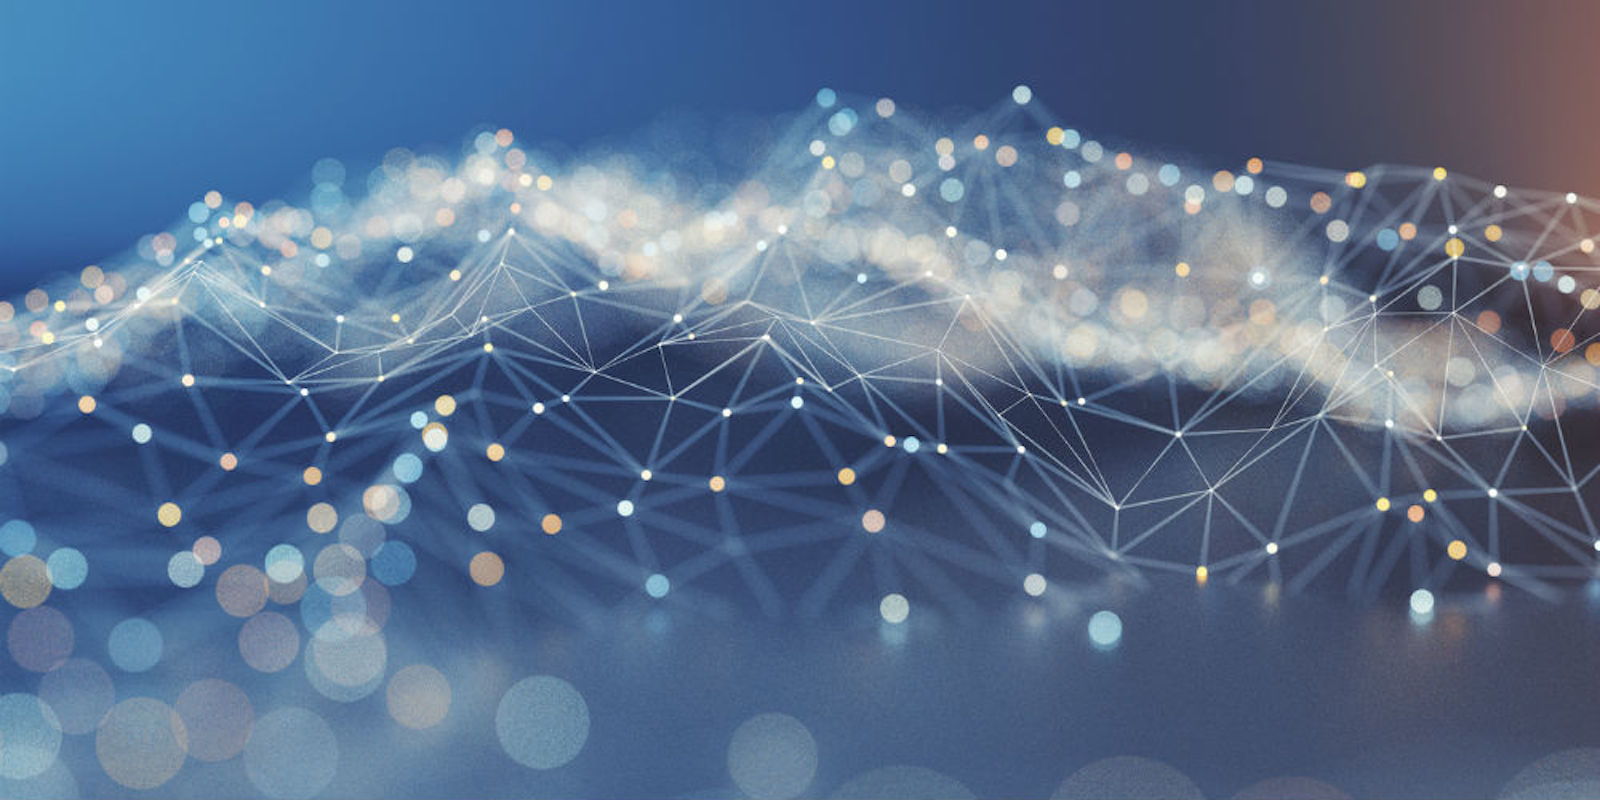 To grow, enterprises need a new type of network